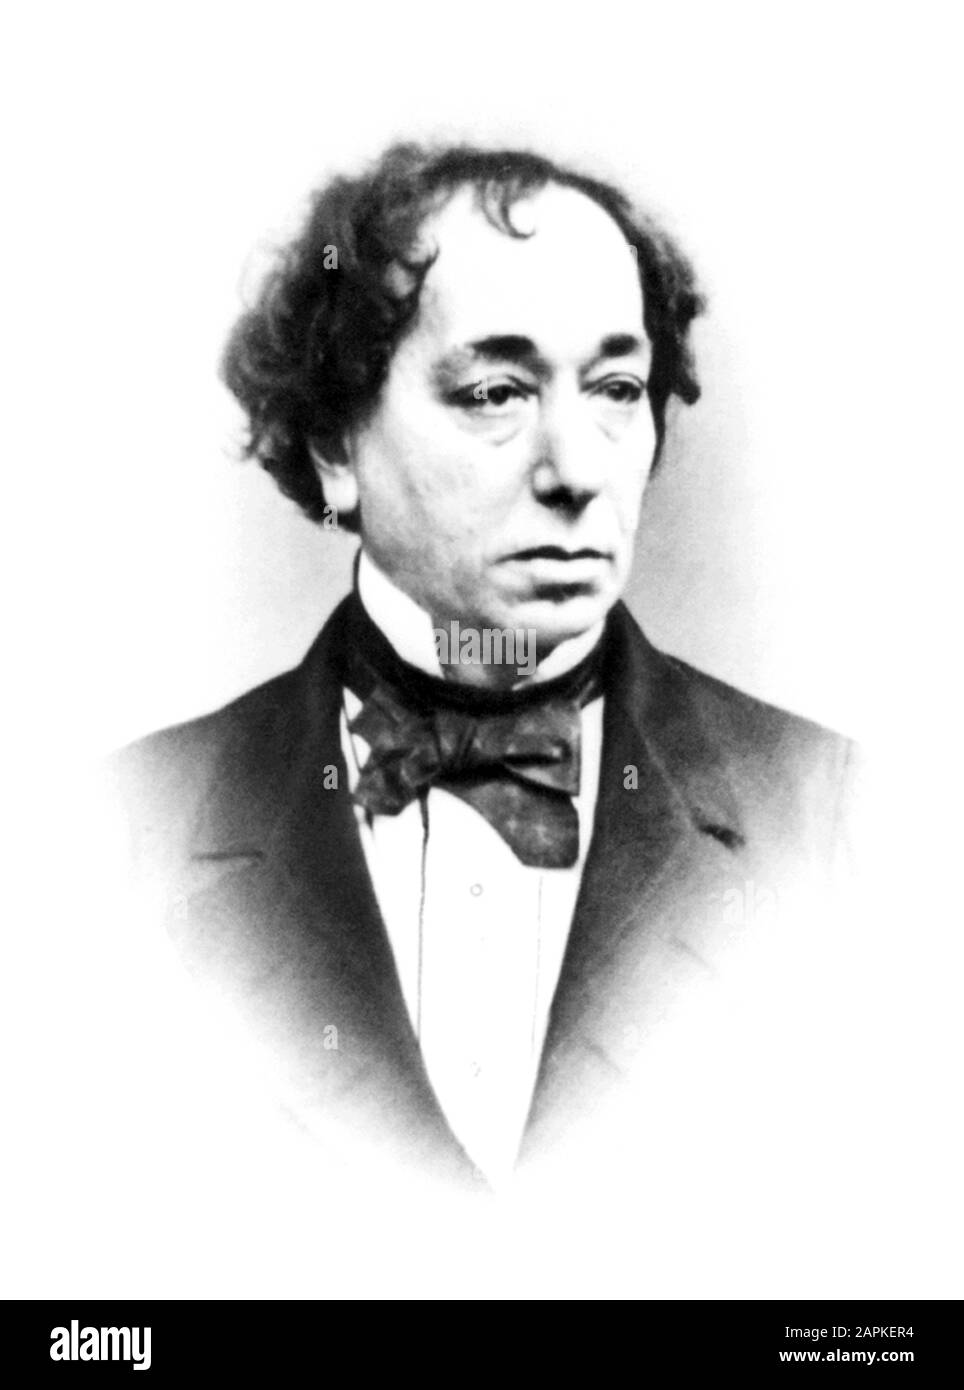 Vintage portrait photo of Benjamin Disraeli, 1st Earl of Beaconsfield (1804 – 1881) – the British Conservative politician who twice served as Prime Minister of the United Kingdom (1868 and 1874 – 1880). Photo circa 1865 by William Edward Kilburn / Henry Lenthall. Stock Photo